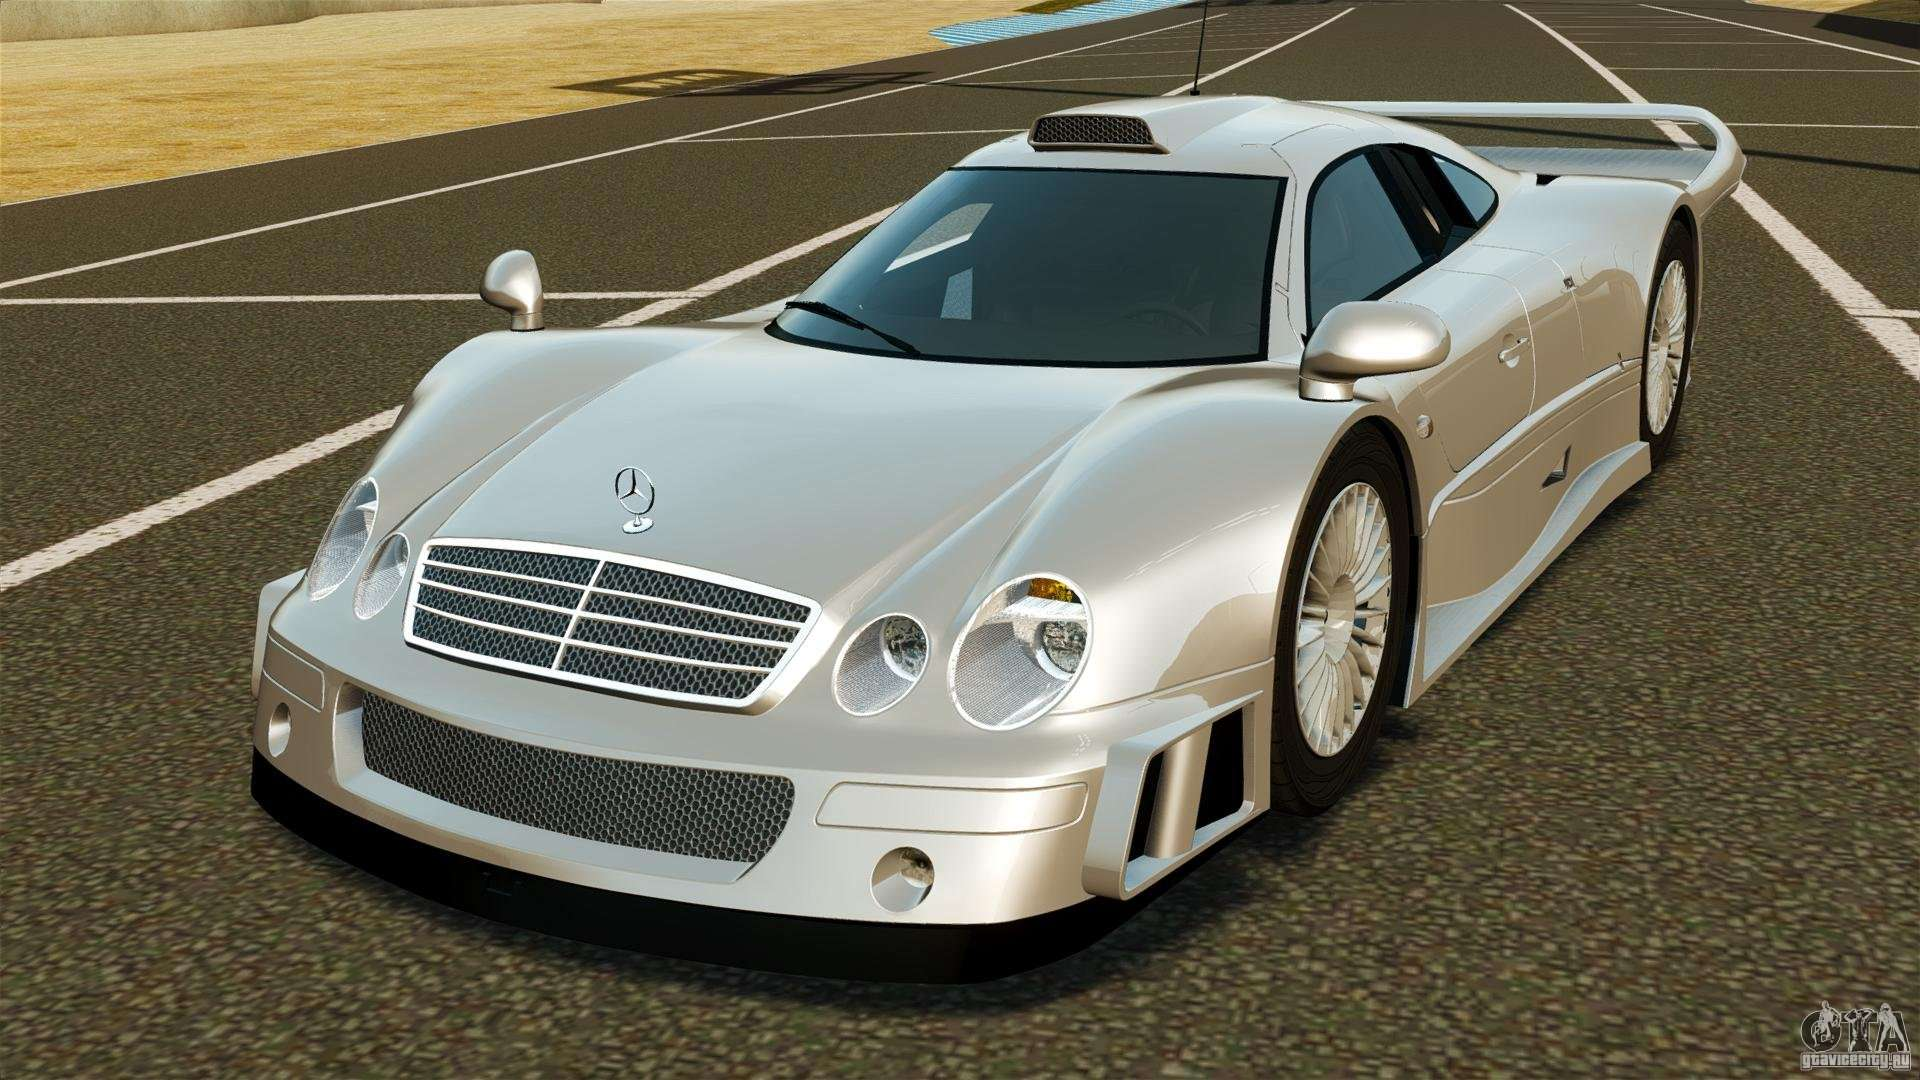 22957 Mercedes Benz Clk Gtr Amg as well Interior 51652954 as well 4086 2002 Mercedes Benz Clk Class 2 additionally Watch also New Mercedes Benz Clk 320 Reivew And. on 1998 clk coupe